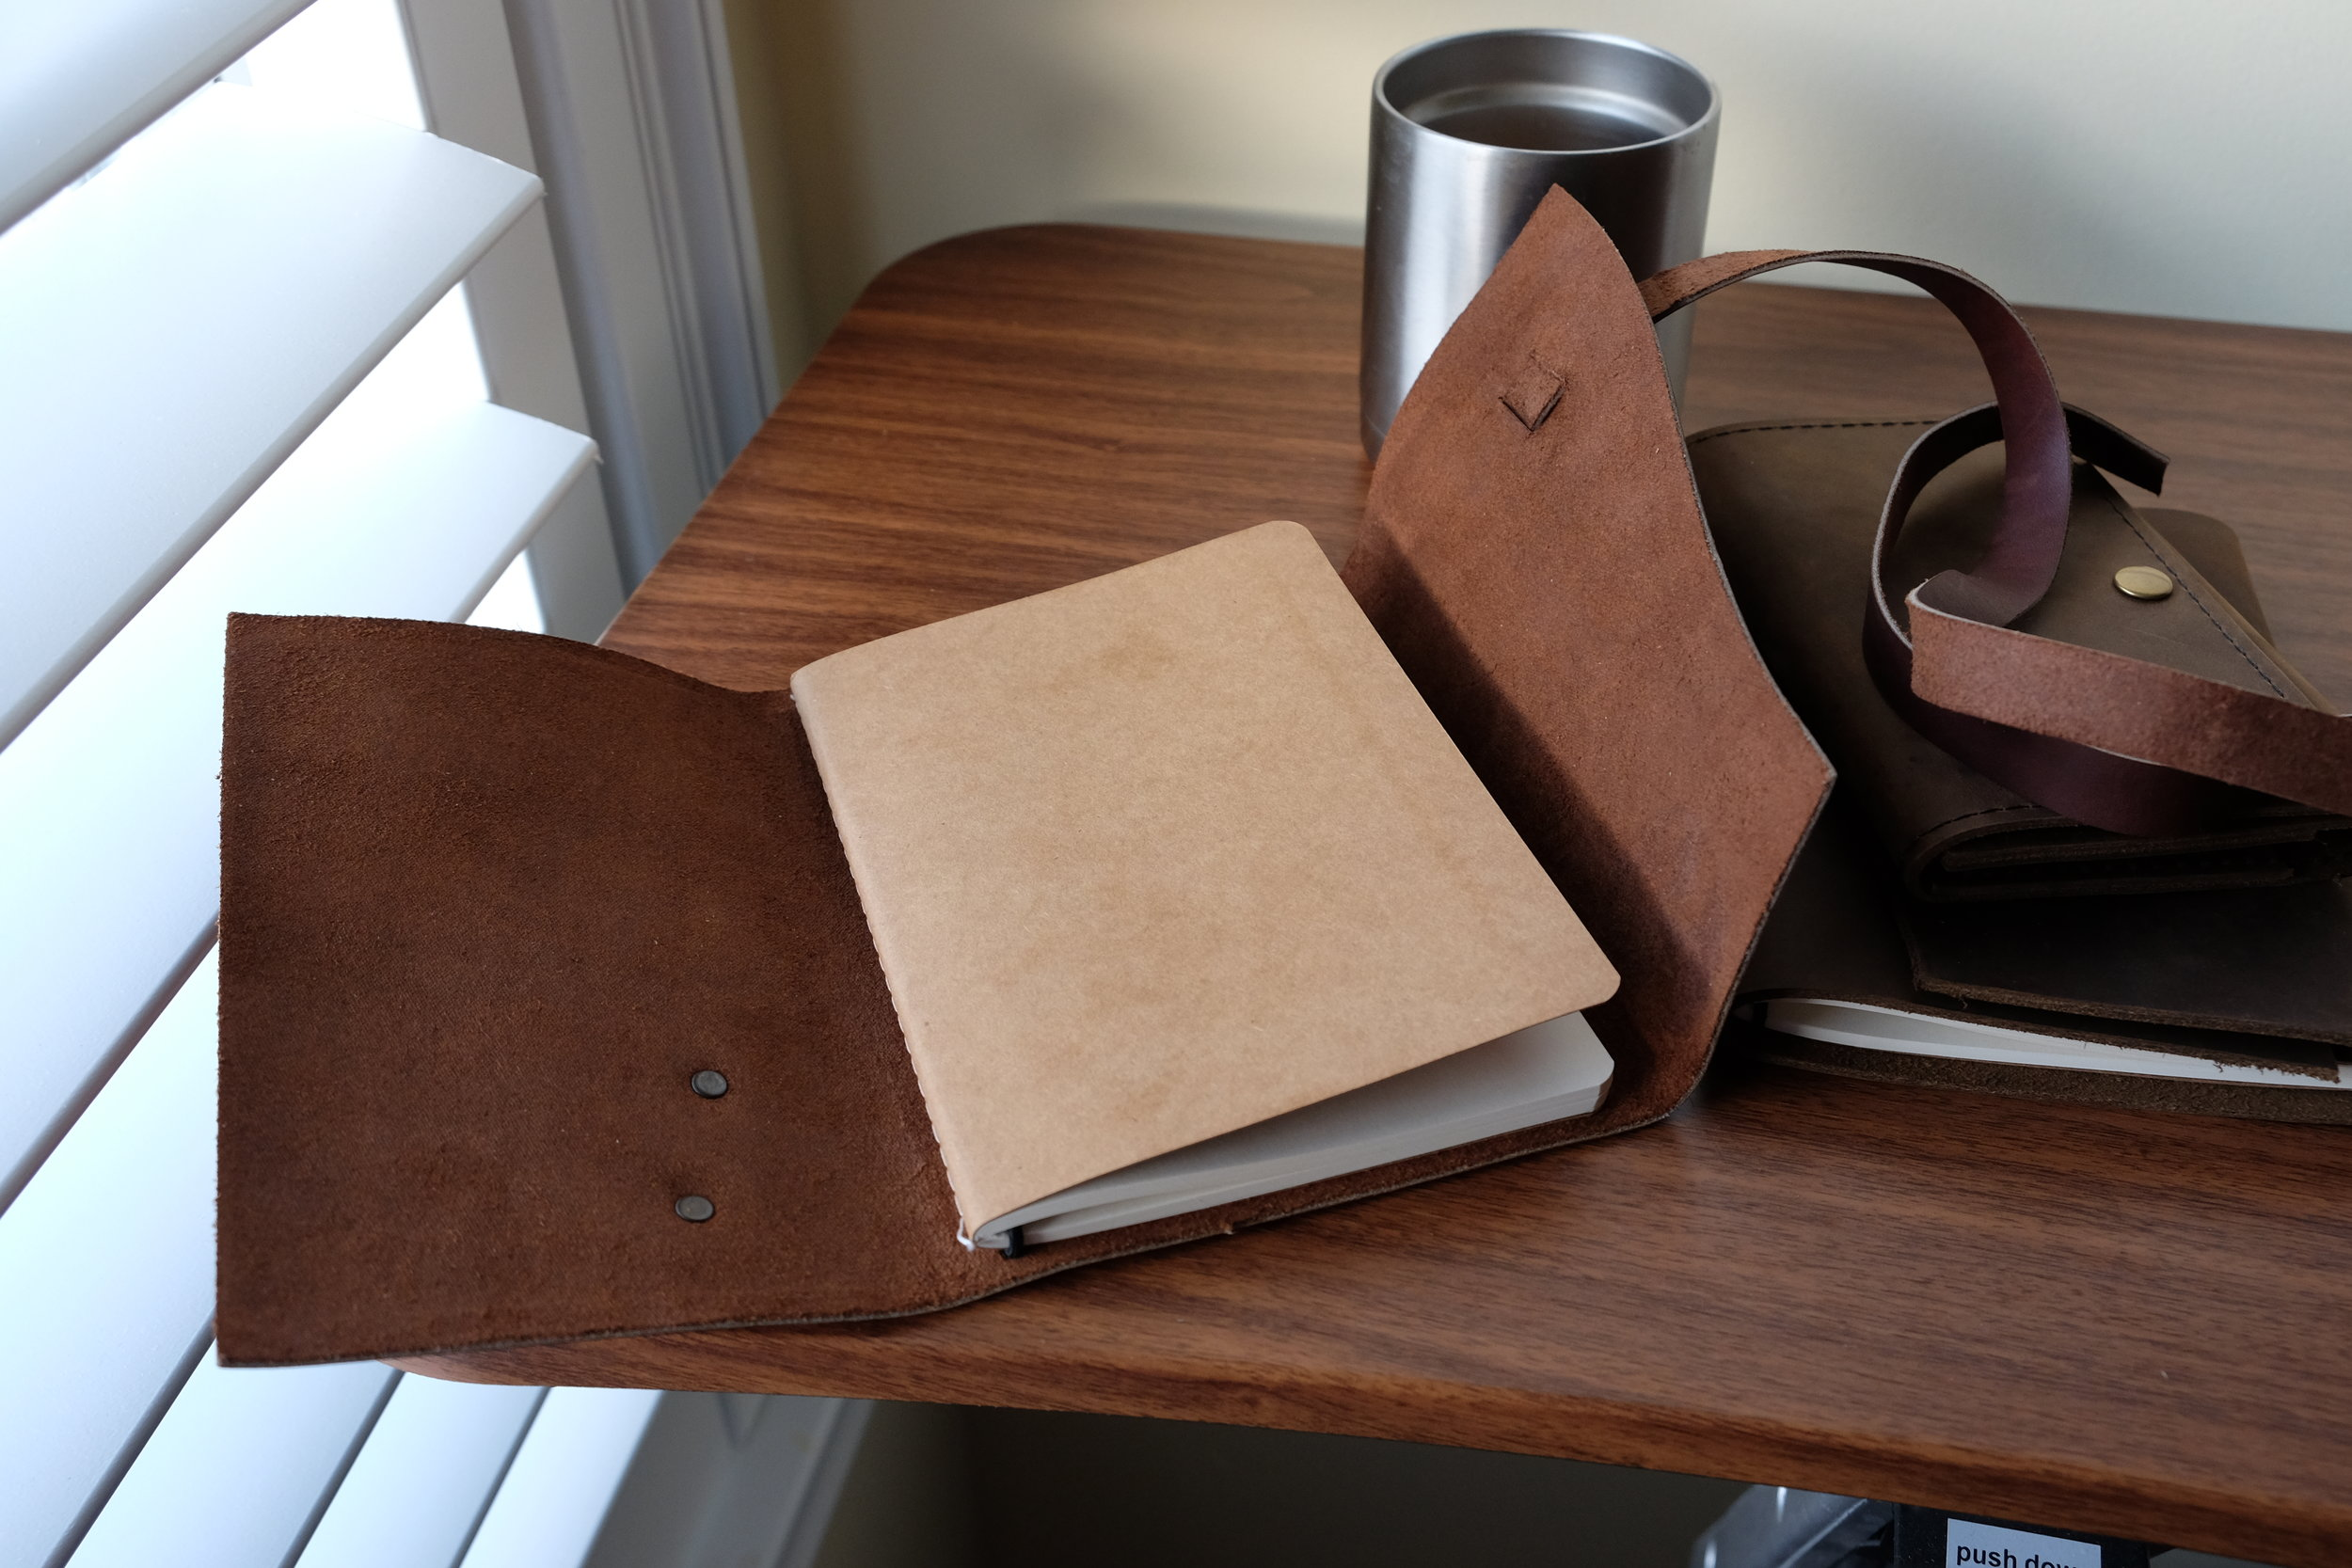 The medium-sized Triple Wrap journal open. The refill on the medium journal is held in by an elastic cord, similar to the Midori Traveler's Notebook.